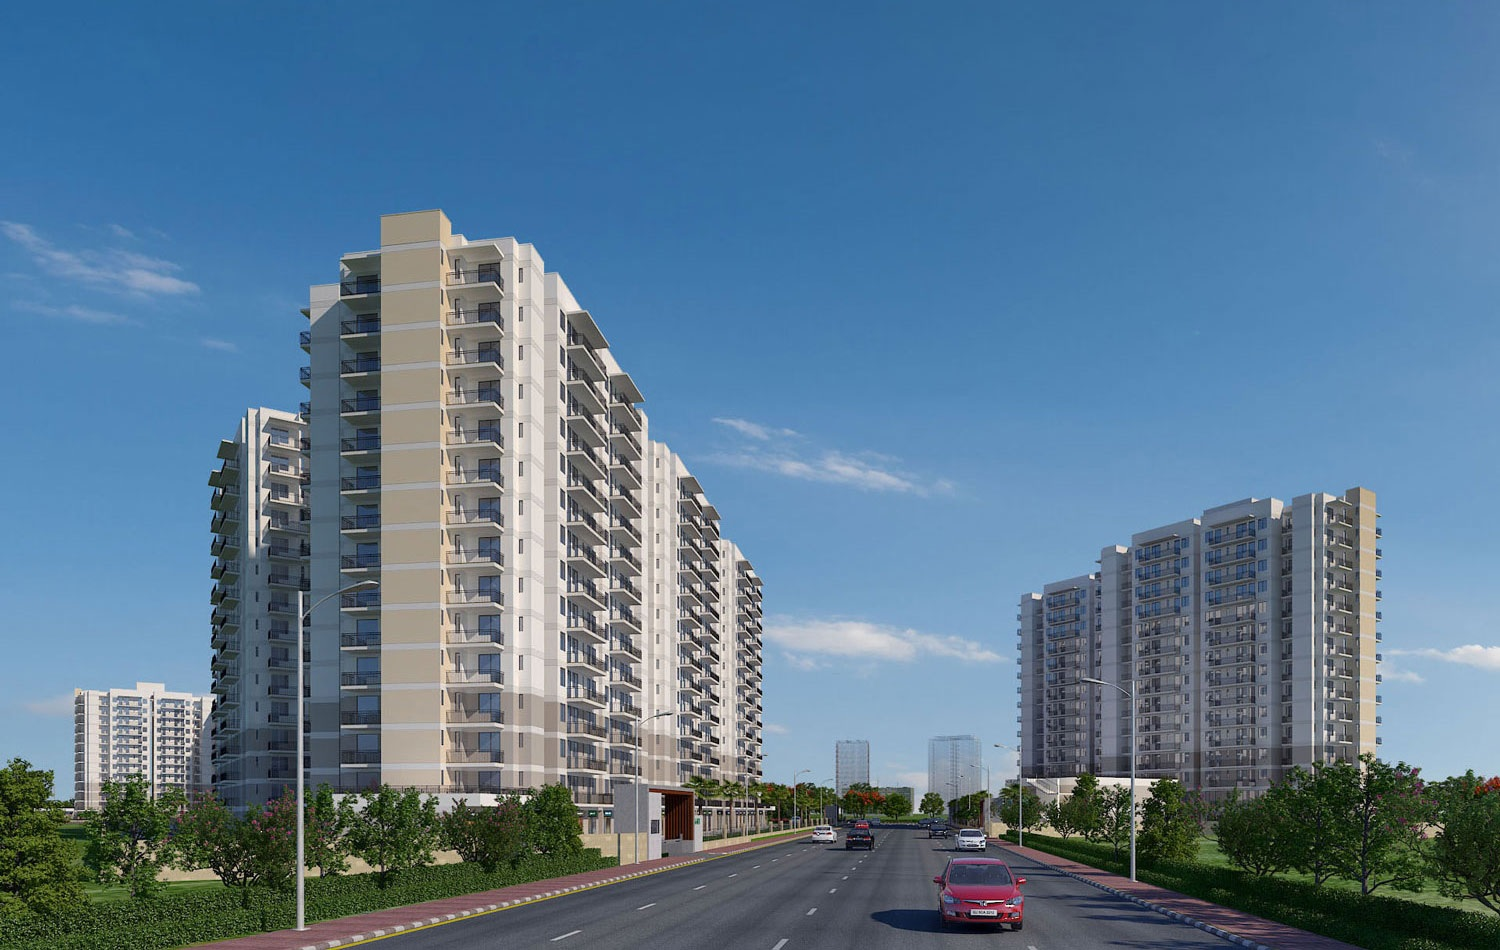 suncity avenue 76 project tower view5